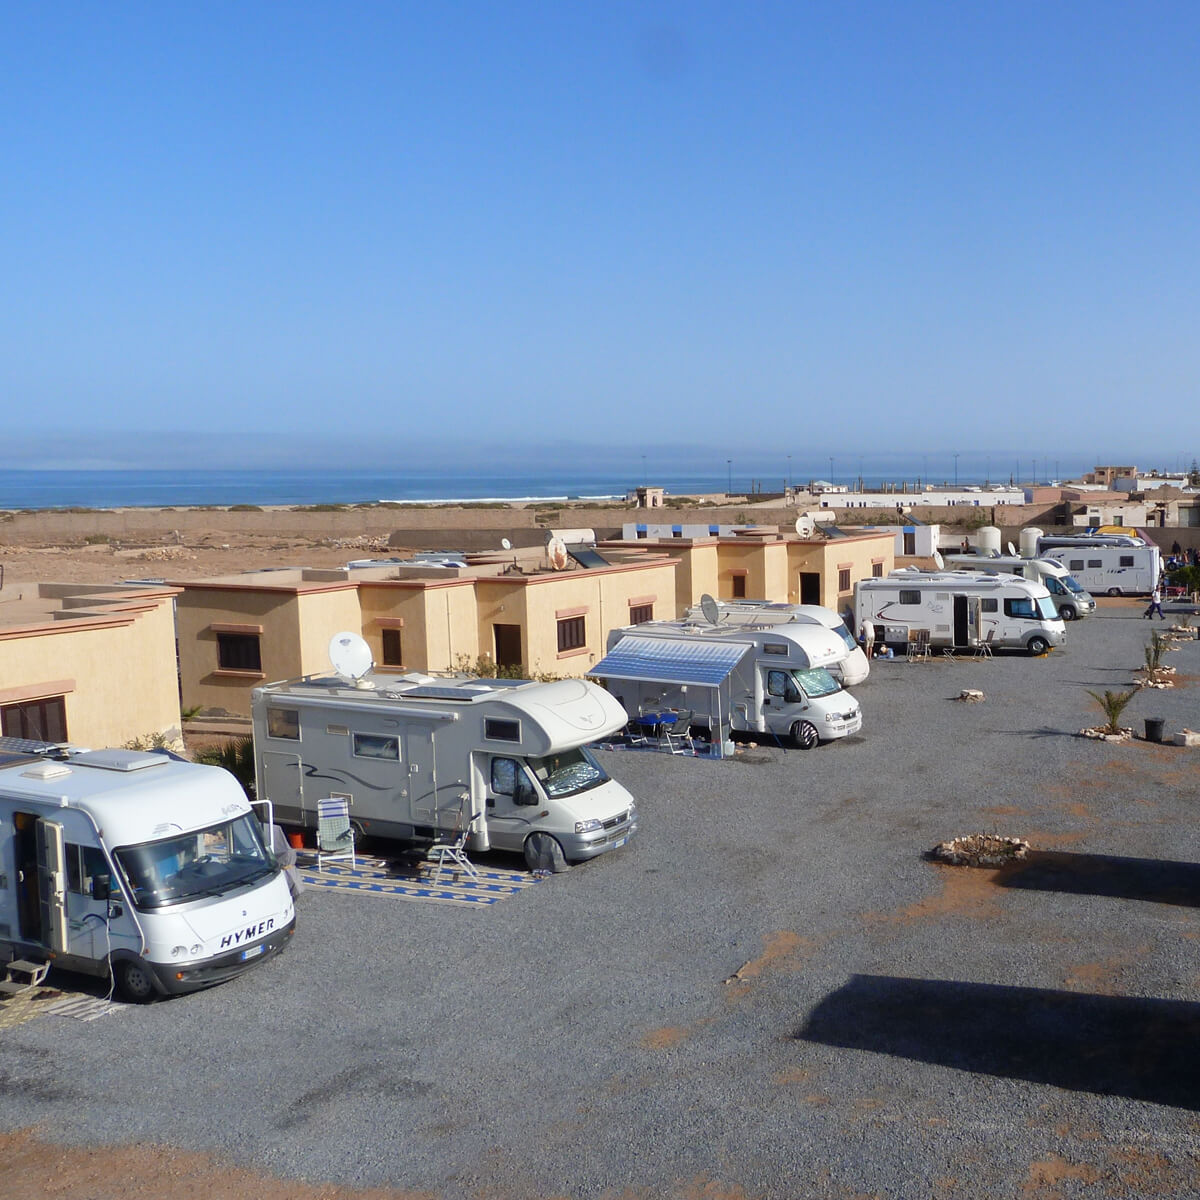 Car Rental 8 Travel Tips Deals Home: The Best Of Campsites In Morocco Reviews, Photos And Prices